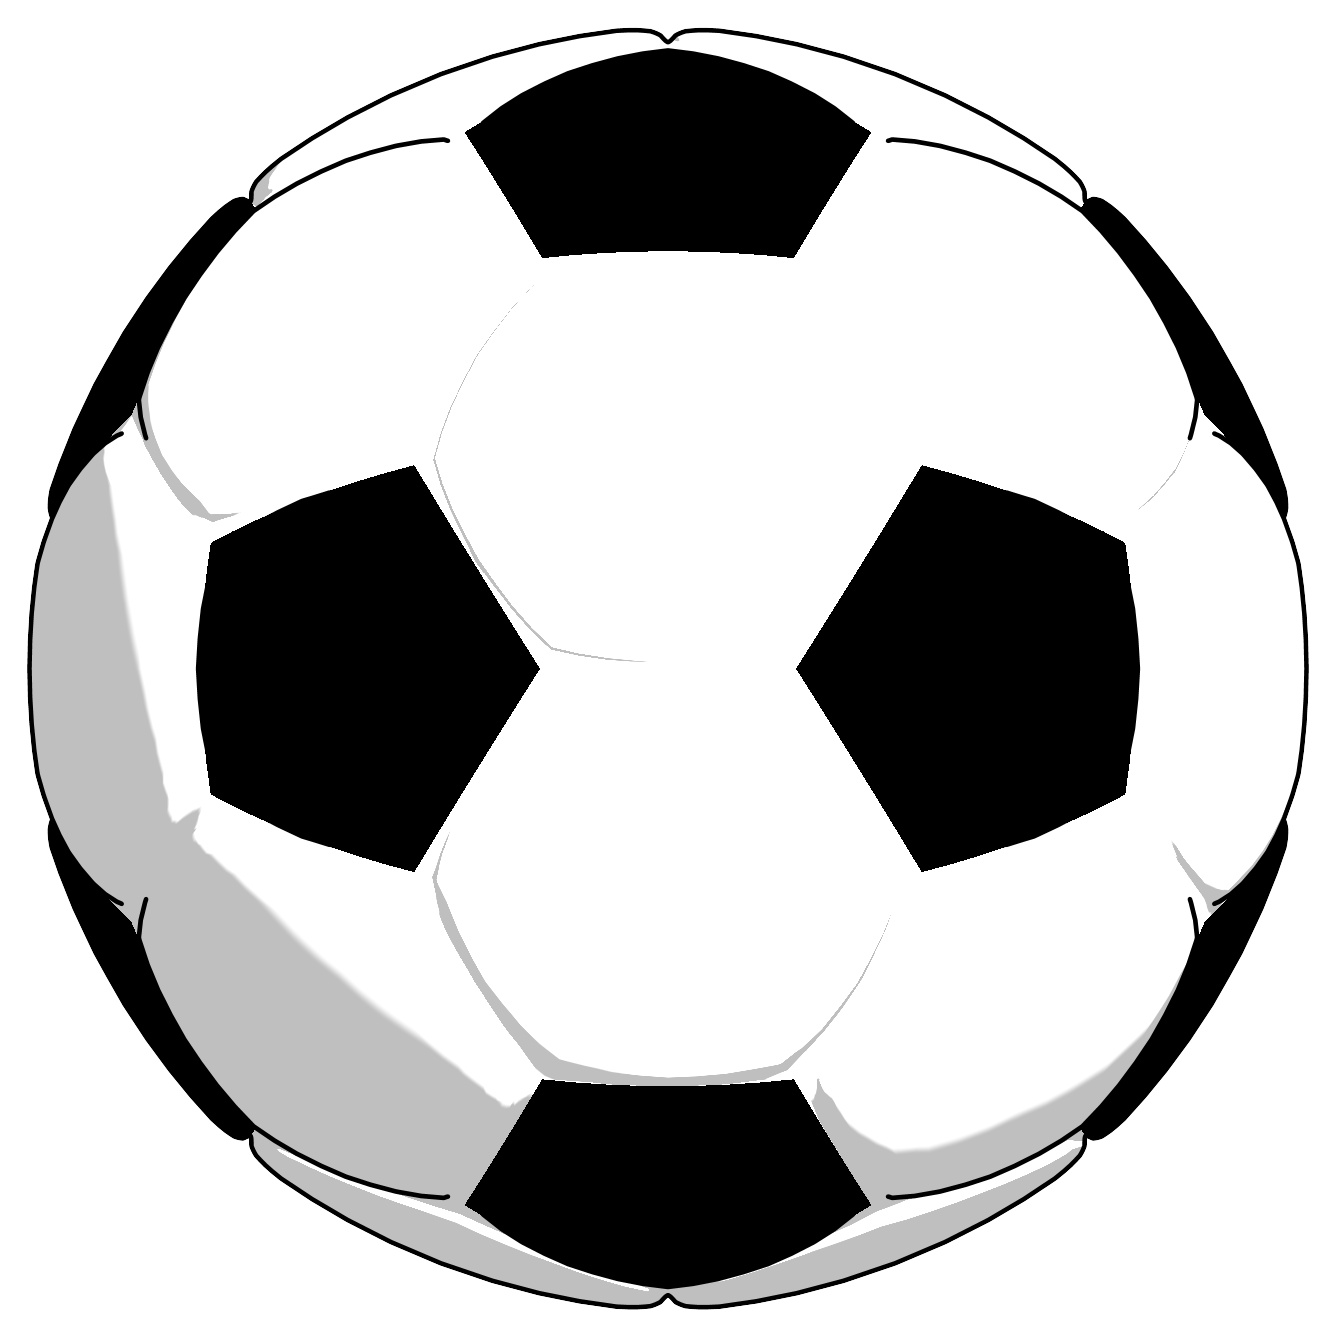 Soccer ball clipart free image royalty free library 28+ Collection of Soccer Ball Clipart Black And White | High quality ... image royalty free library